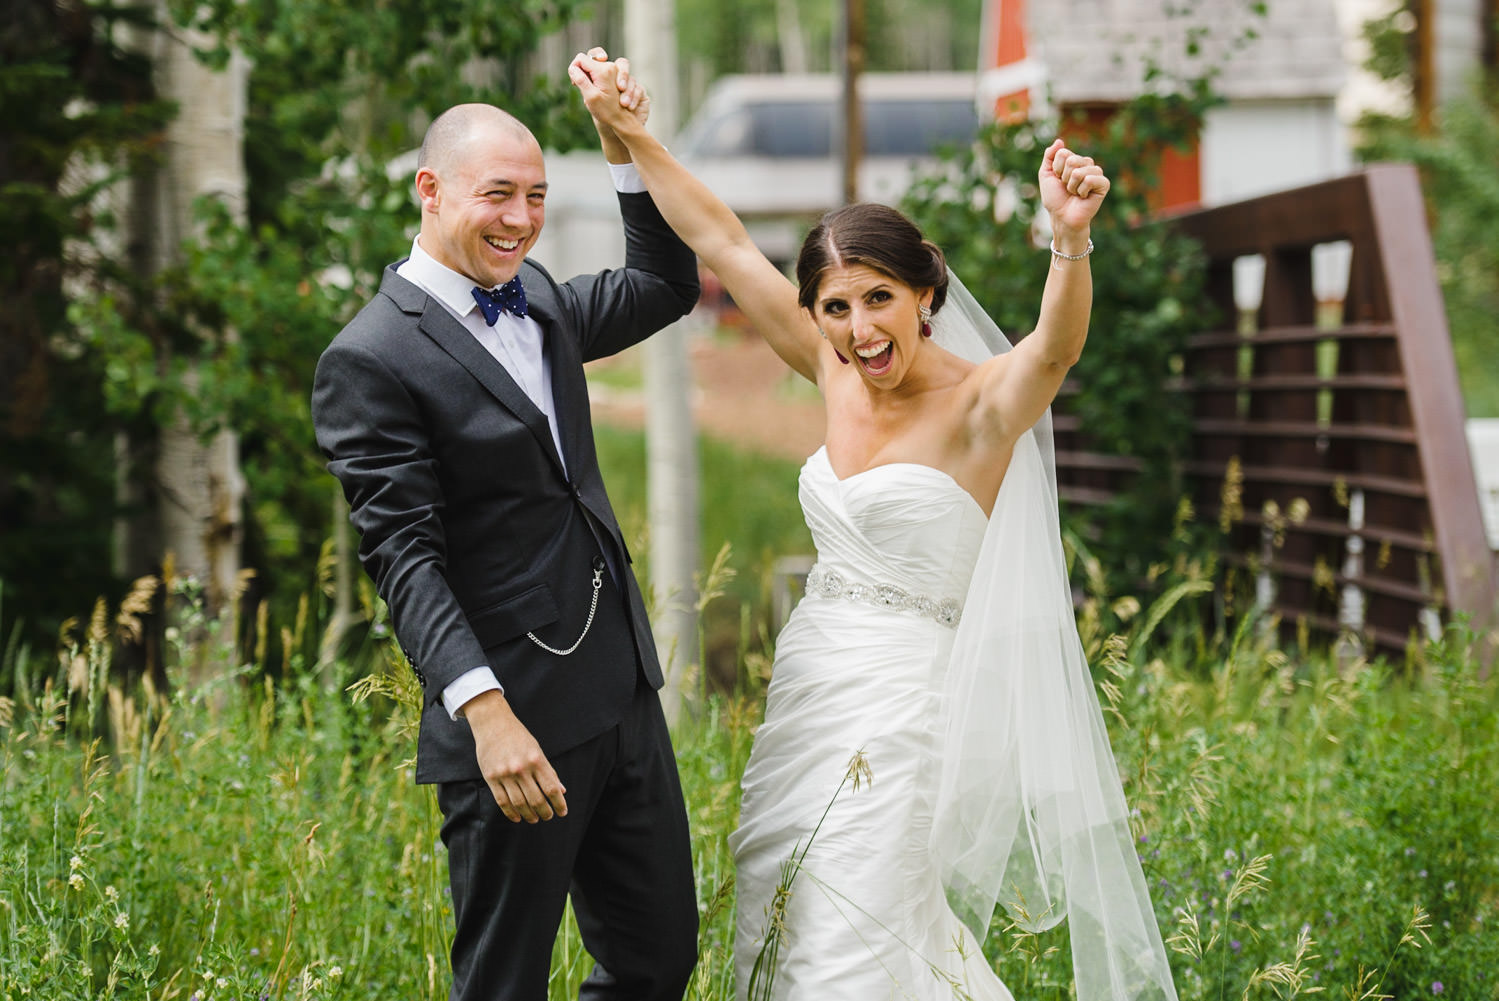 Red Pine Lodge bride and groom celebrating wedding photo